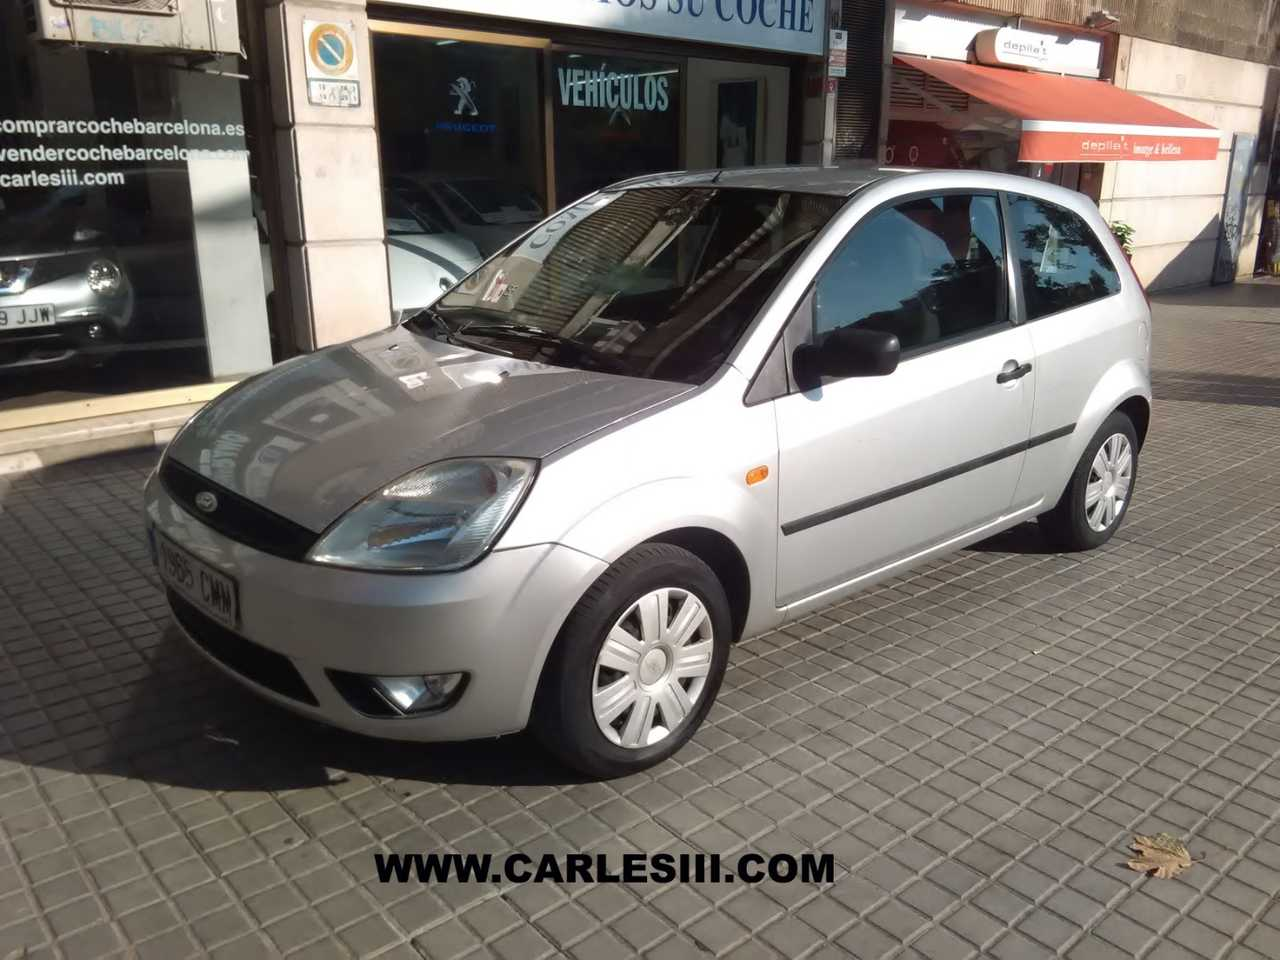 Ford Fiesta 1.4 TDCi Ambiente Coupe   - Foto 1